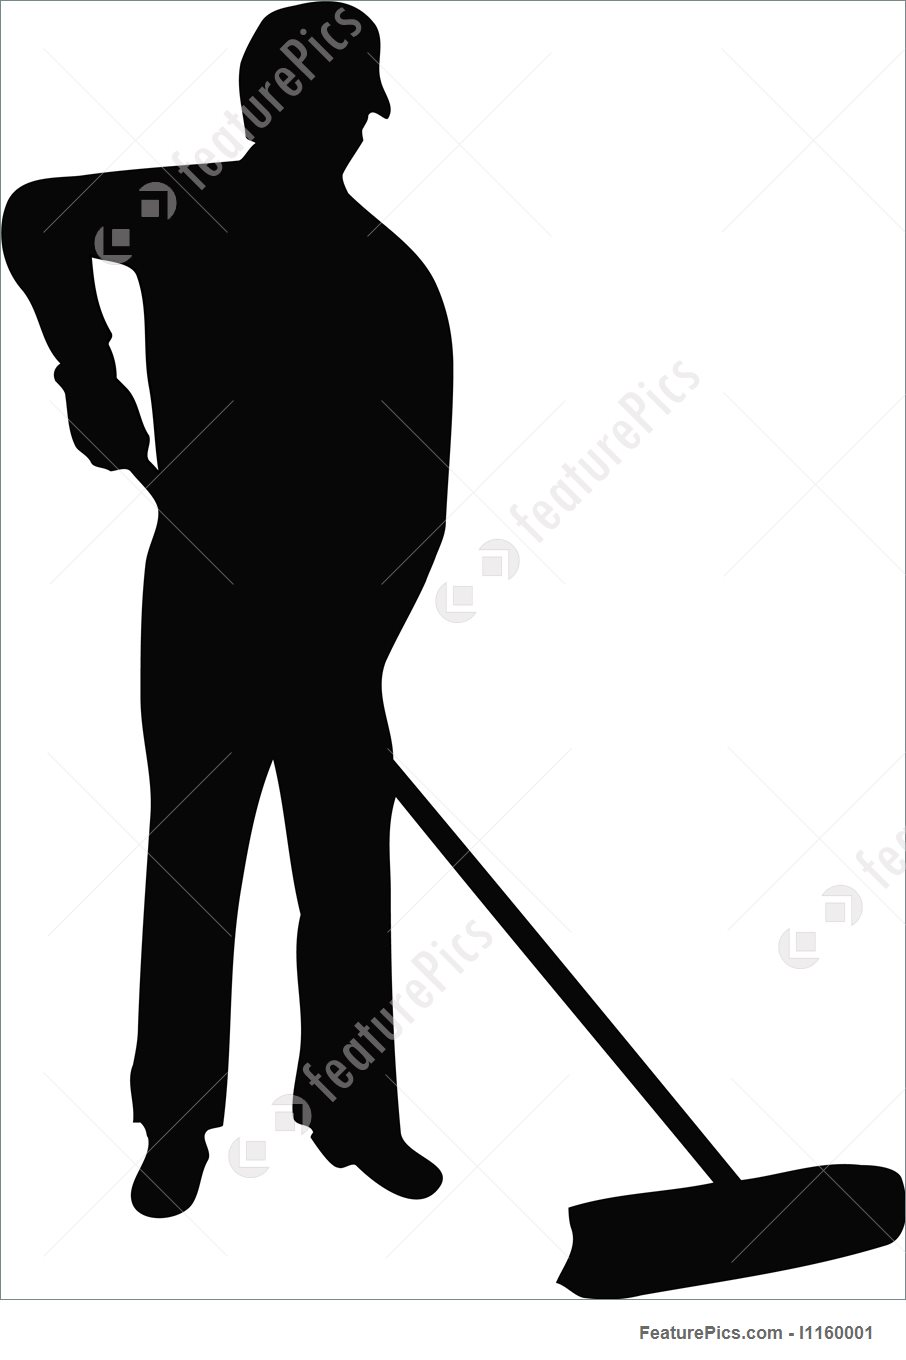 906x1360 Illustration Of Cleaner Man Cleaning